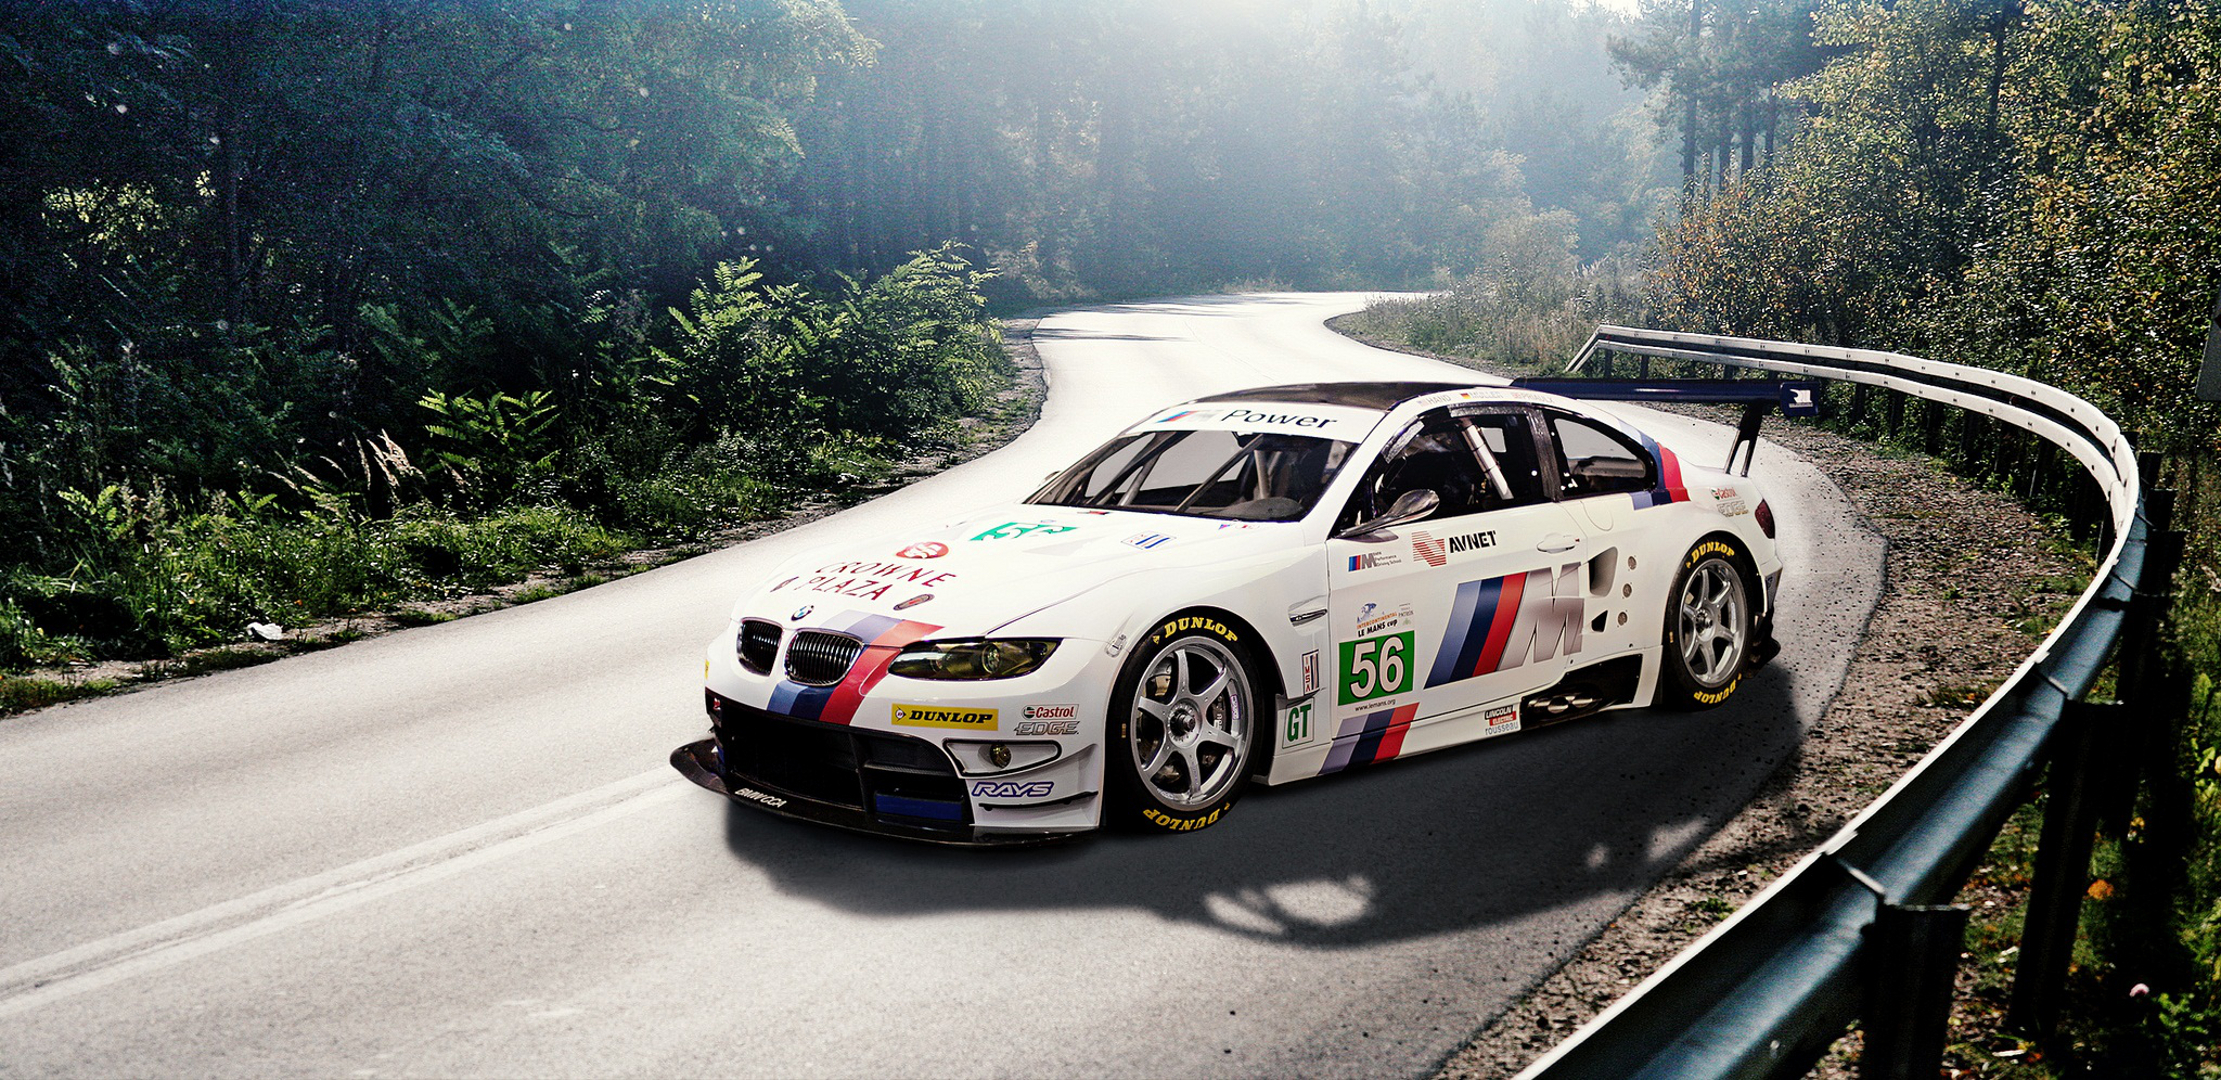 Car sticker design download - Download Wallpaper Road Race Car White E92 Bmw White Stickers Decal Labels Bmw Forest Section Bmw Resolution 2221x1080